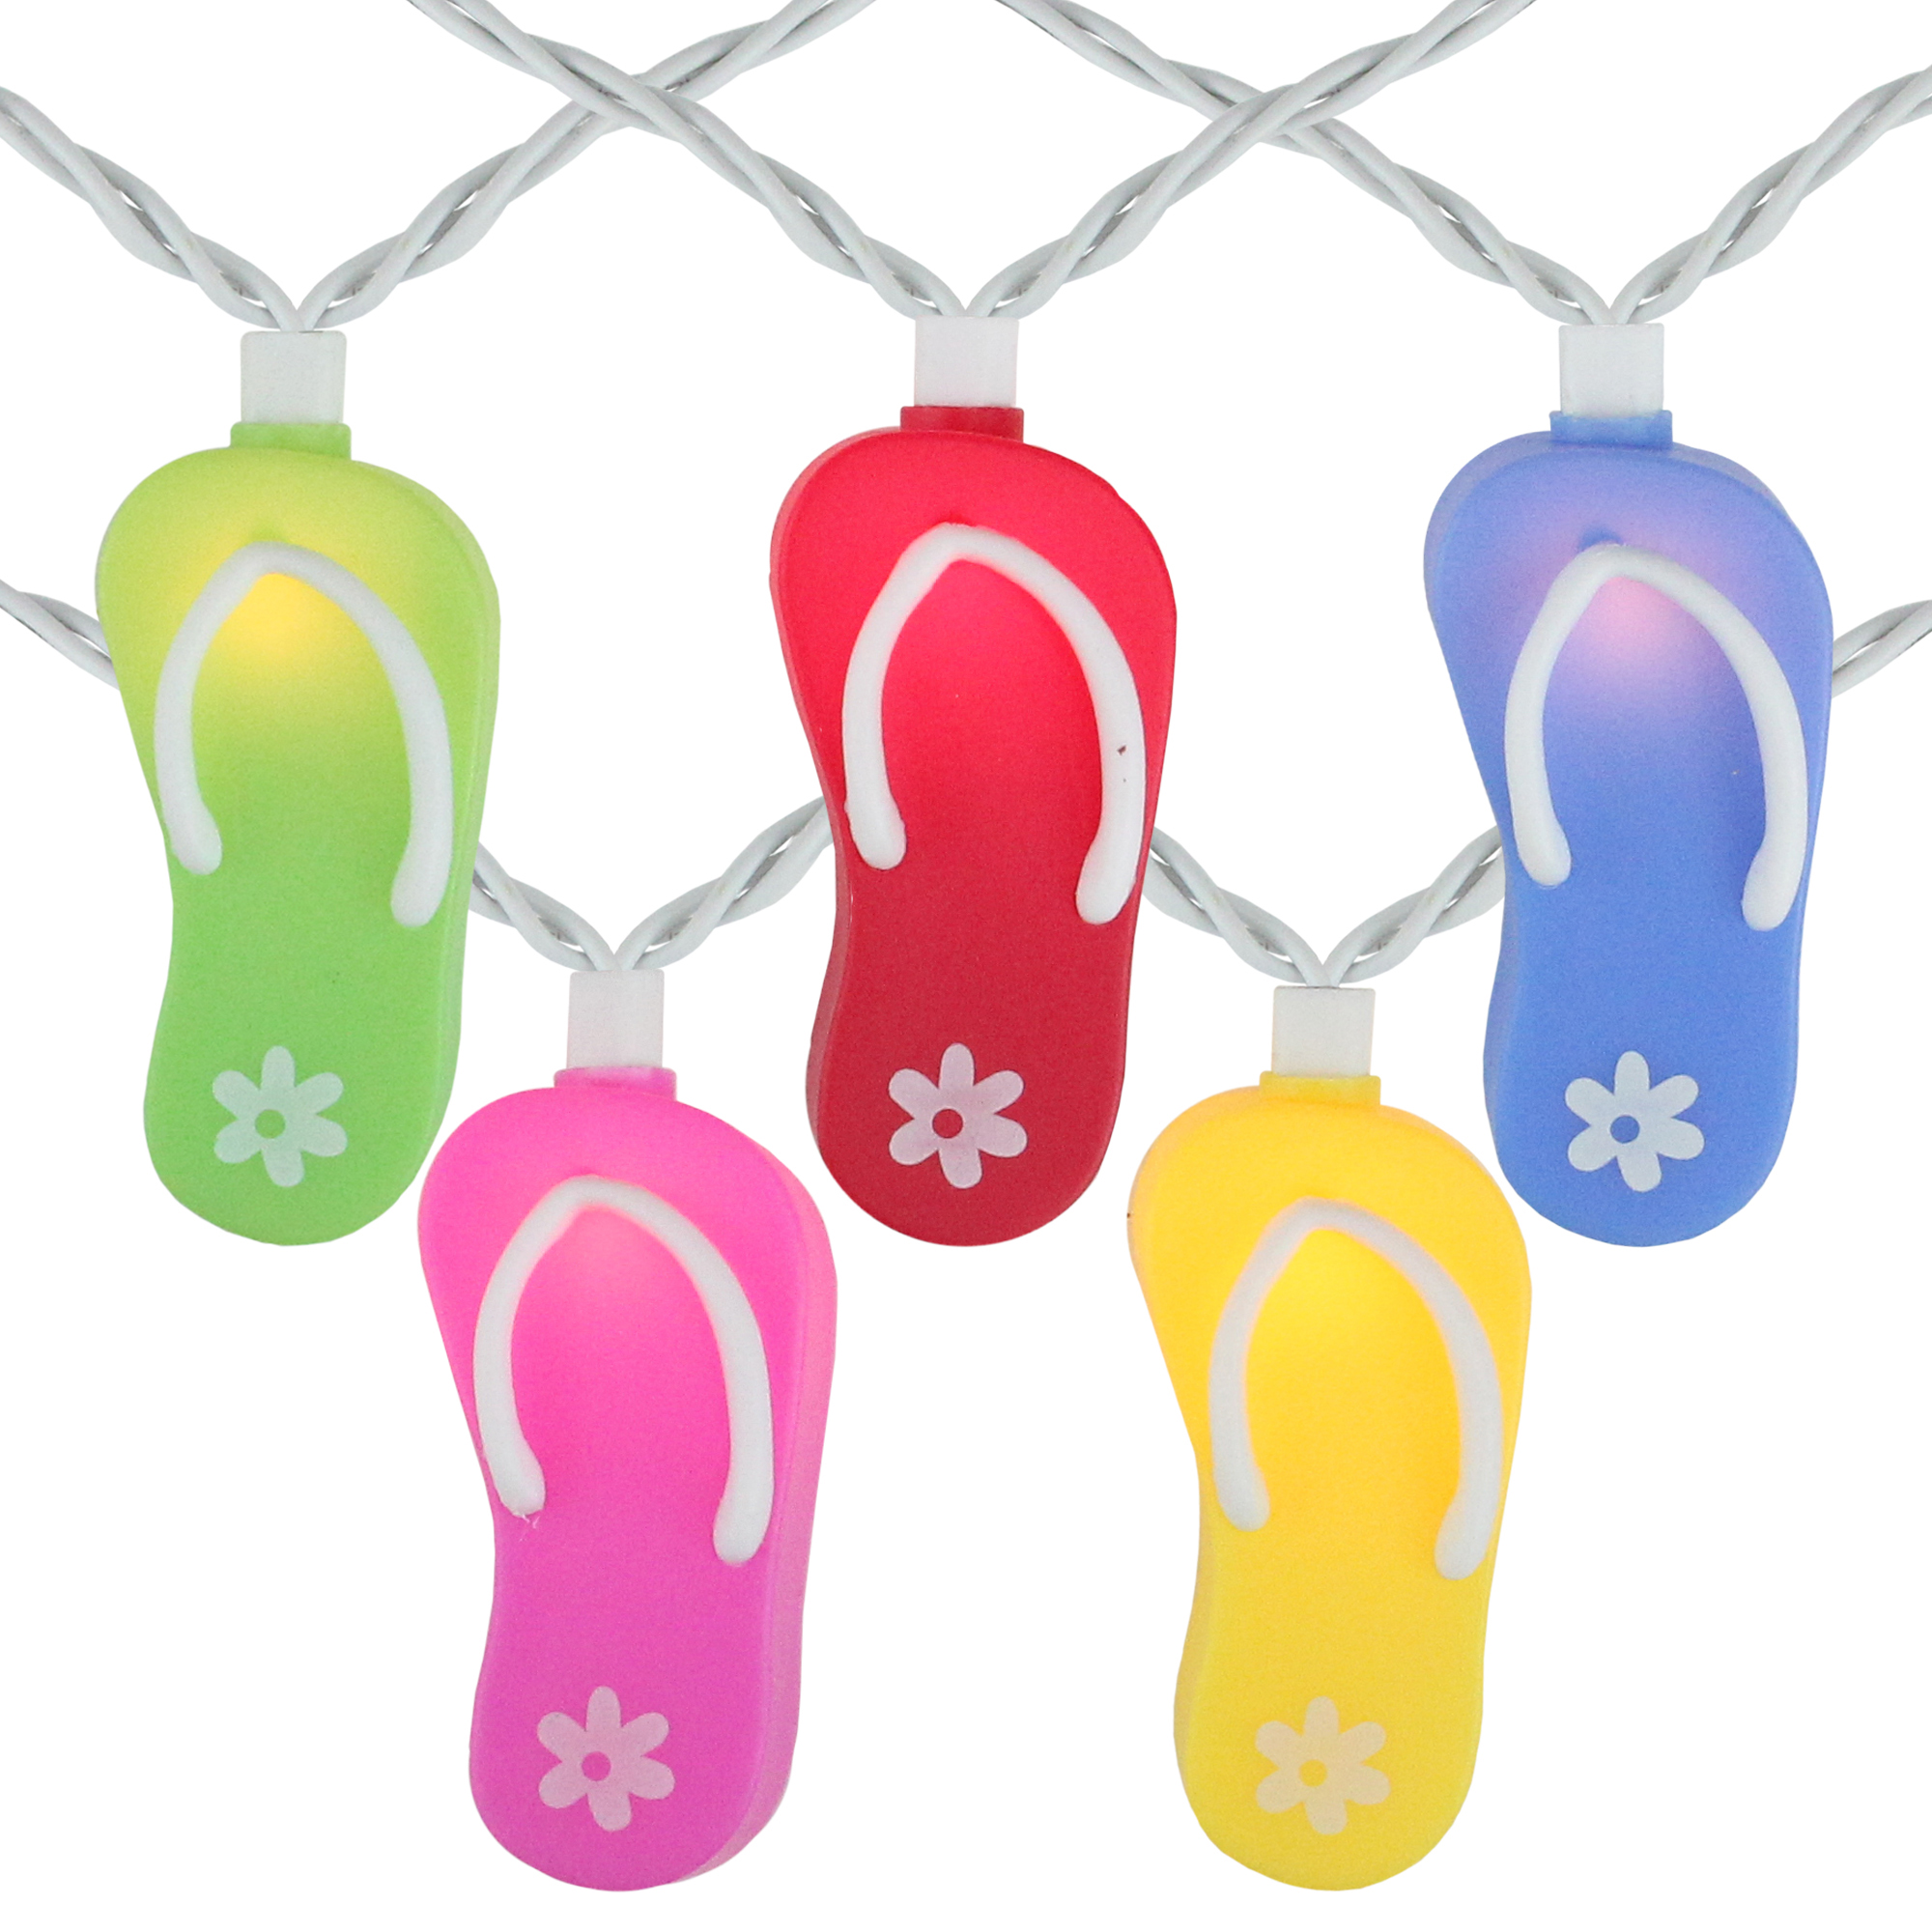 Set of 10 Beach Party Summer Garden Patio Colorful Flip Flop Christmas Lights - 7.25 ft White Wire